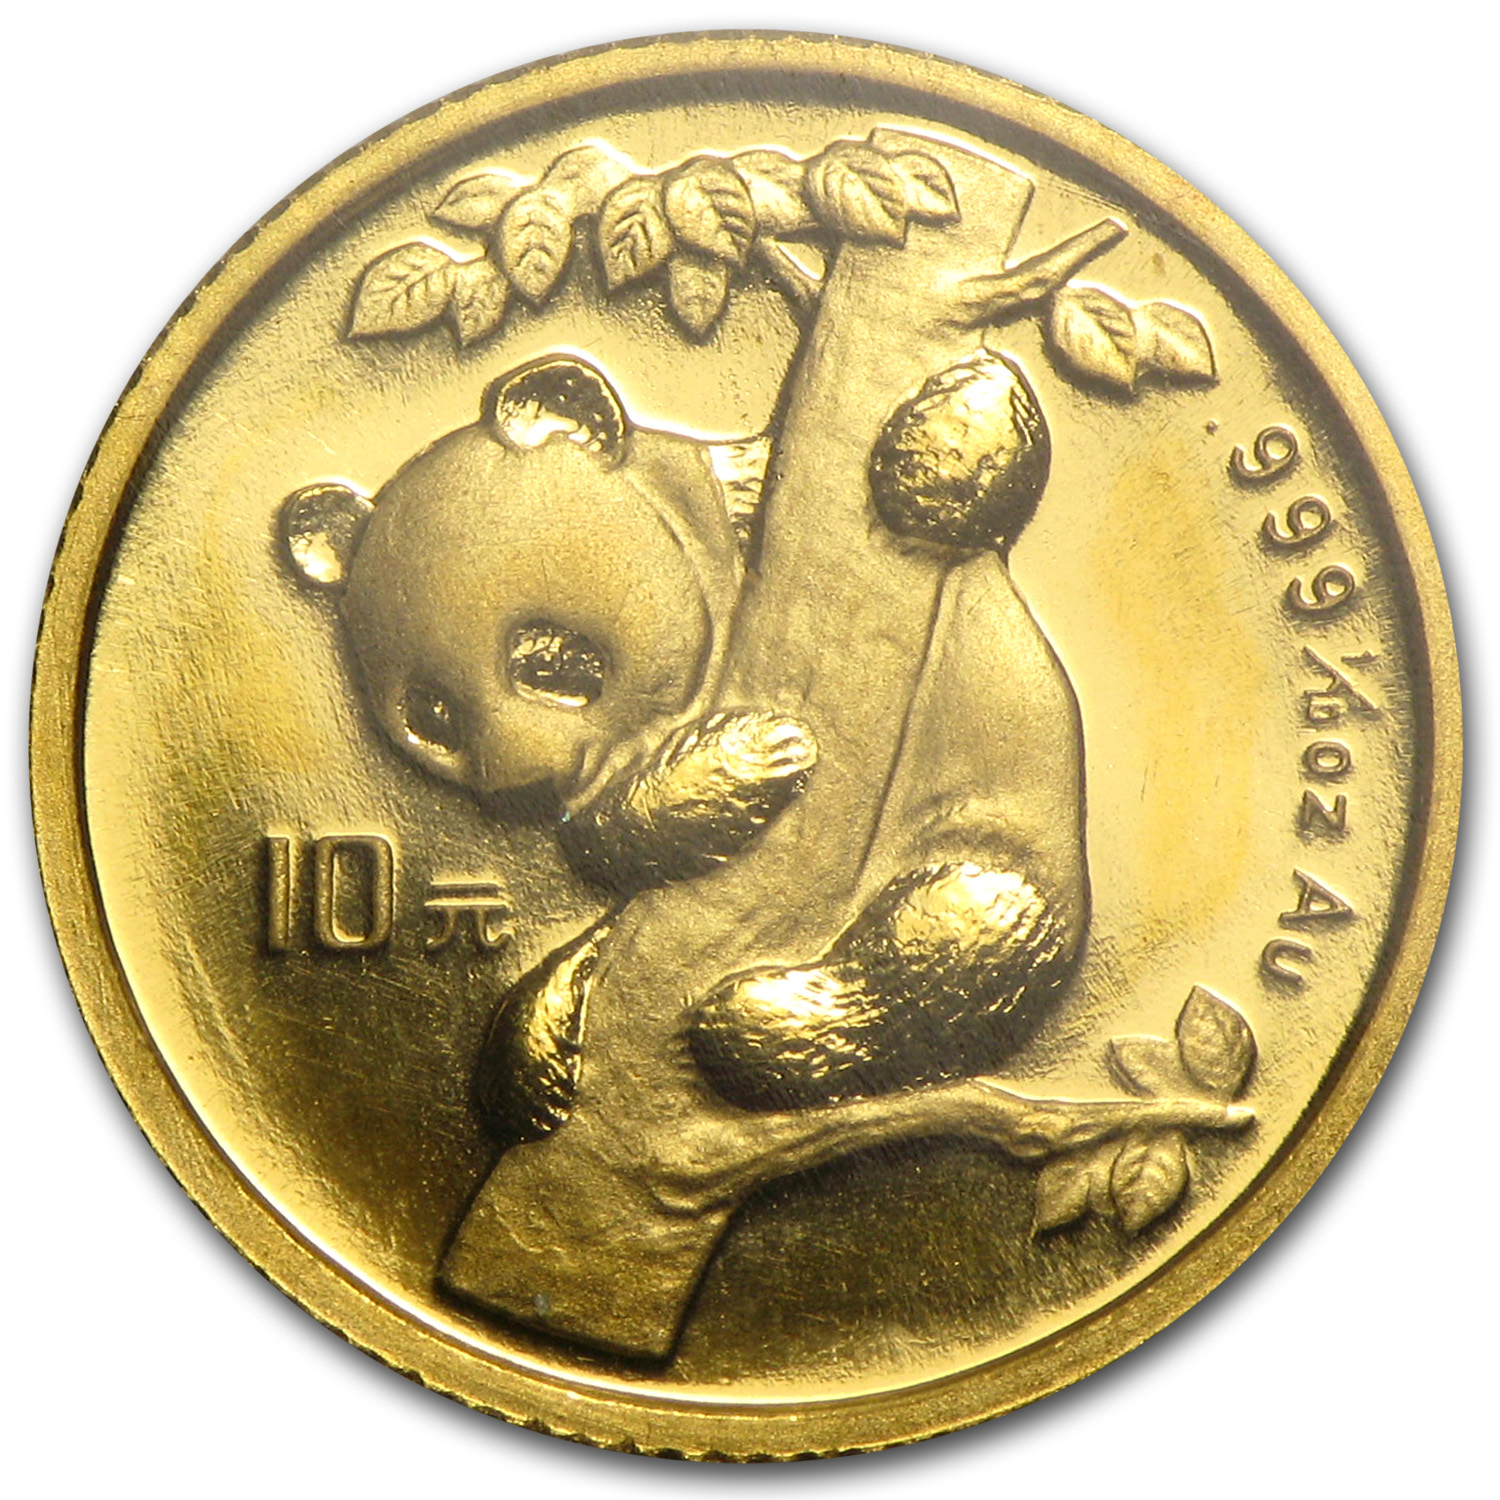 1996 1/10 oz Gold Chinese Panda Small Date BU (Sealed)